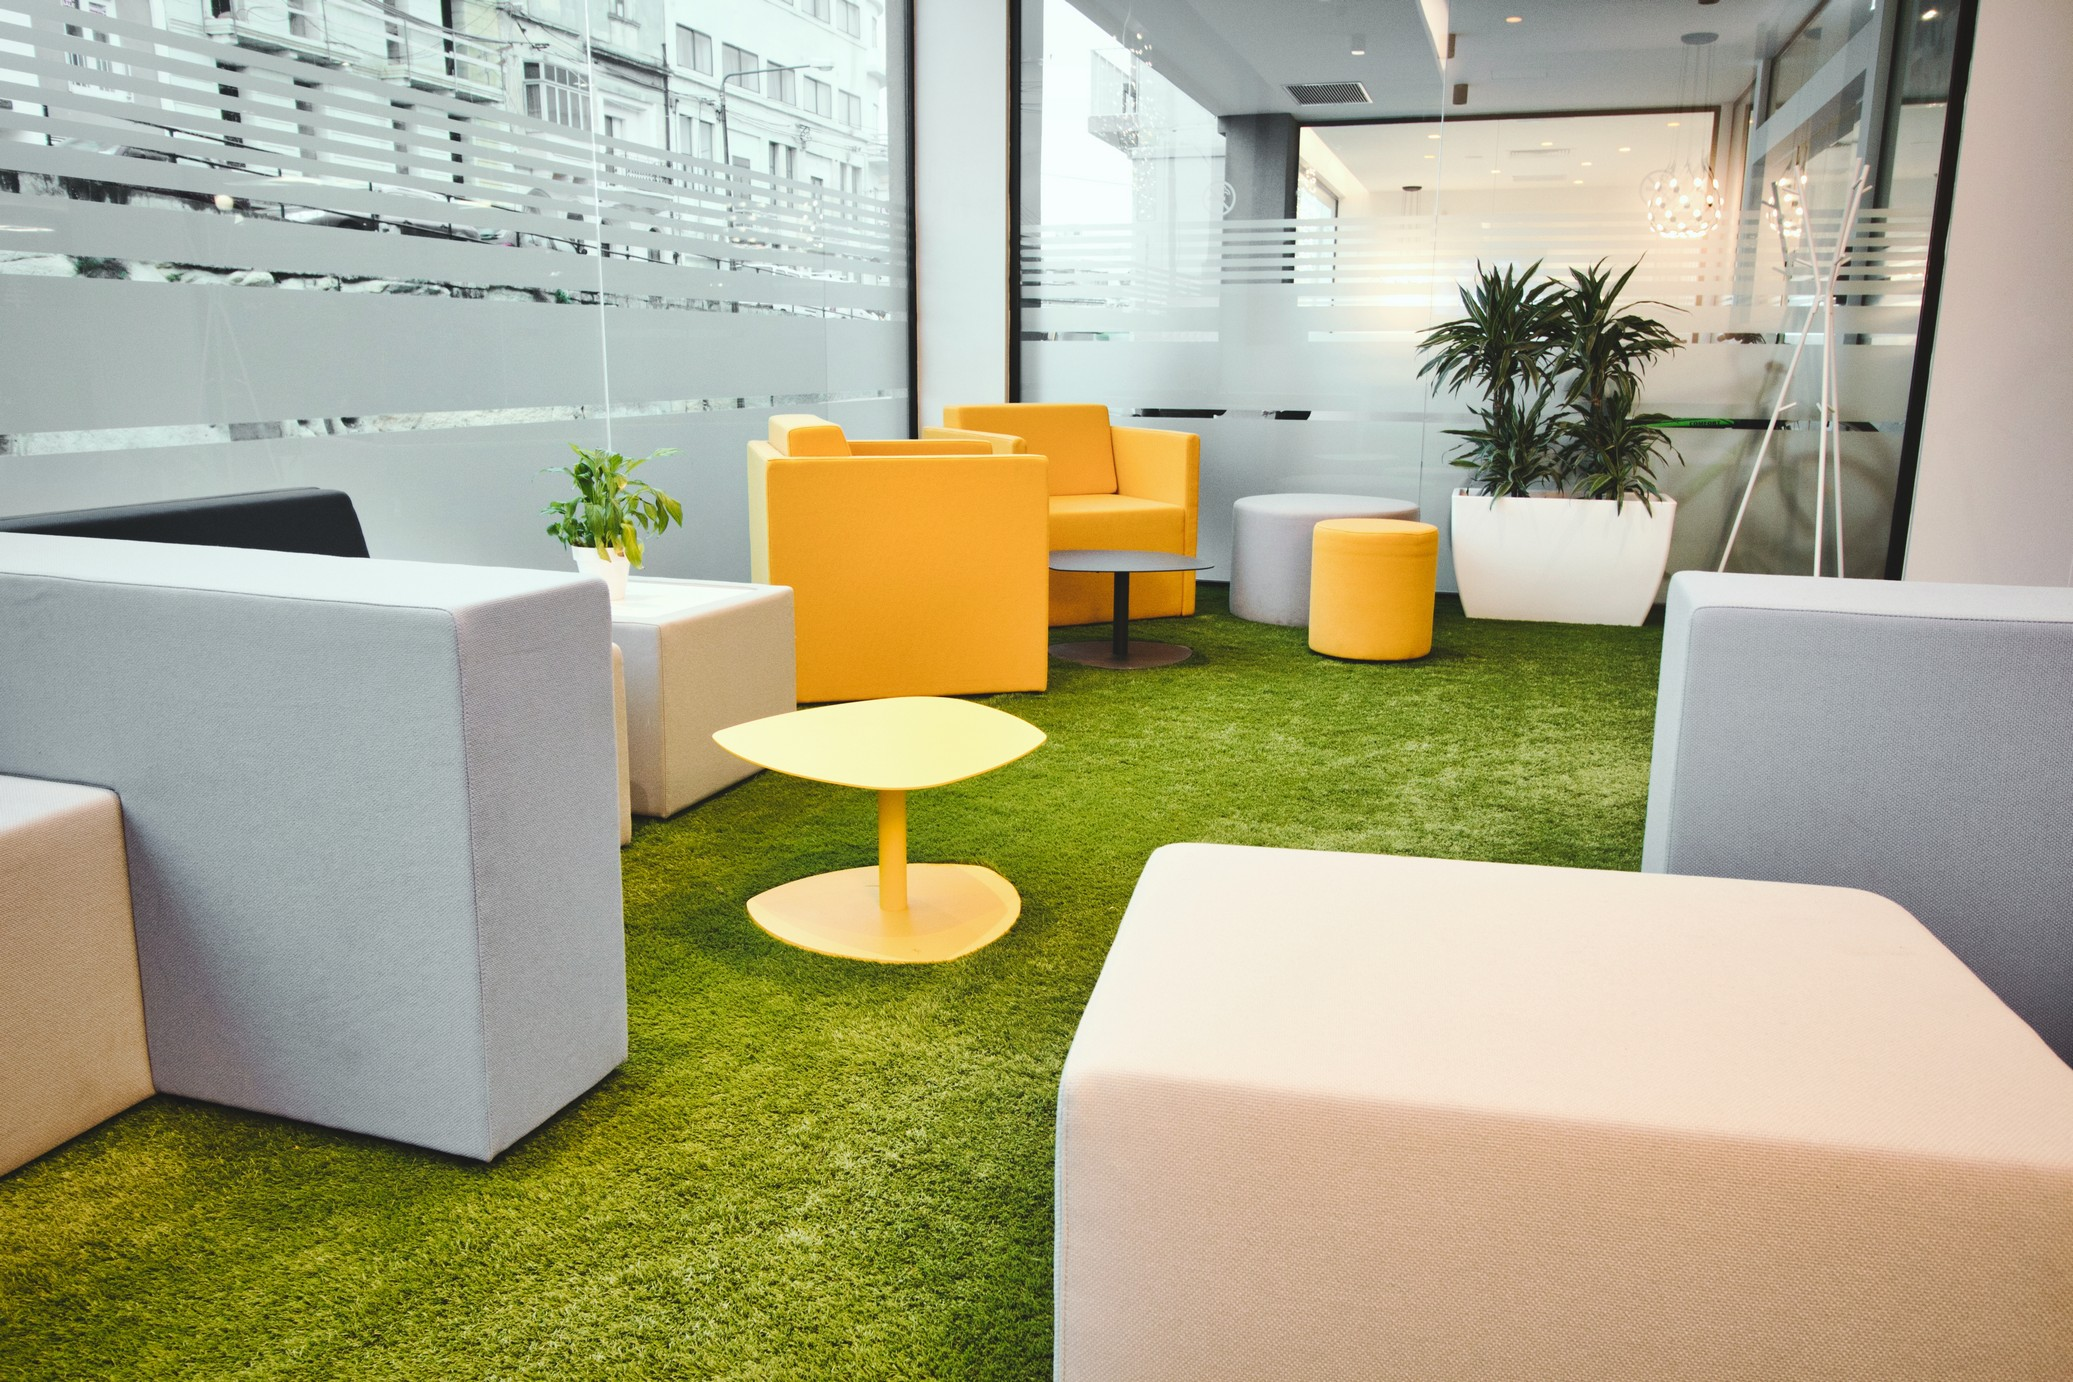 Break Room Design in San Francisco Bay Area